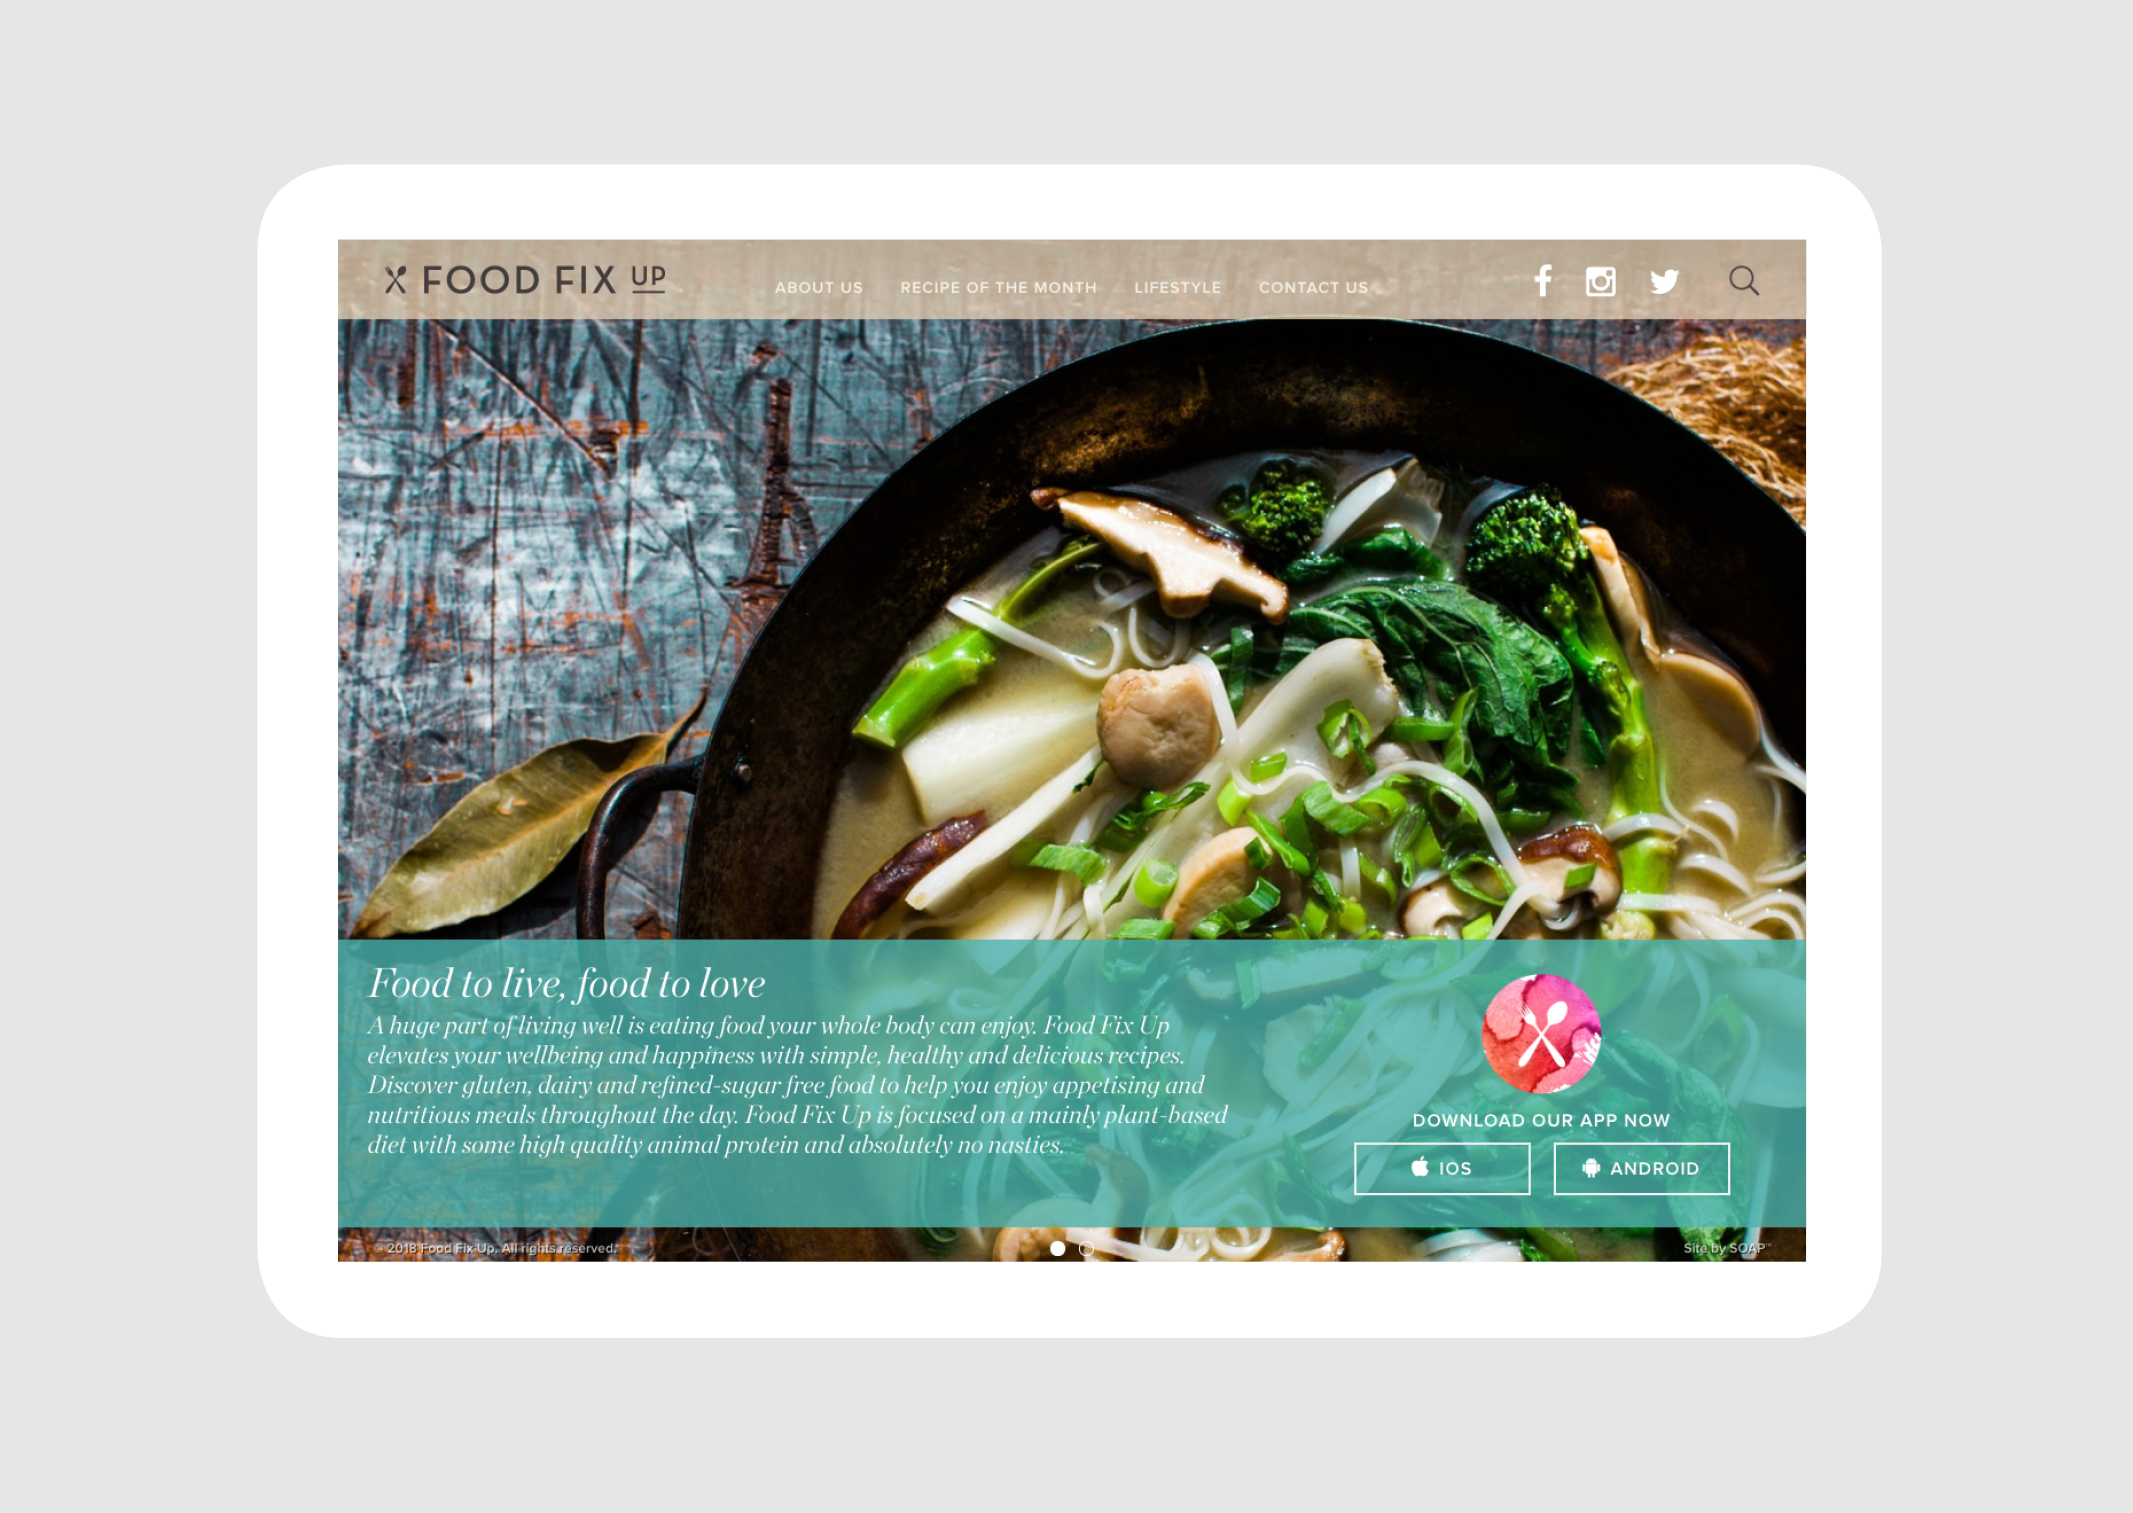 Food Fix Up Home page features delicious food photography and app store download link